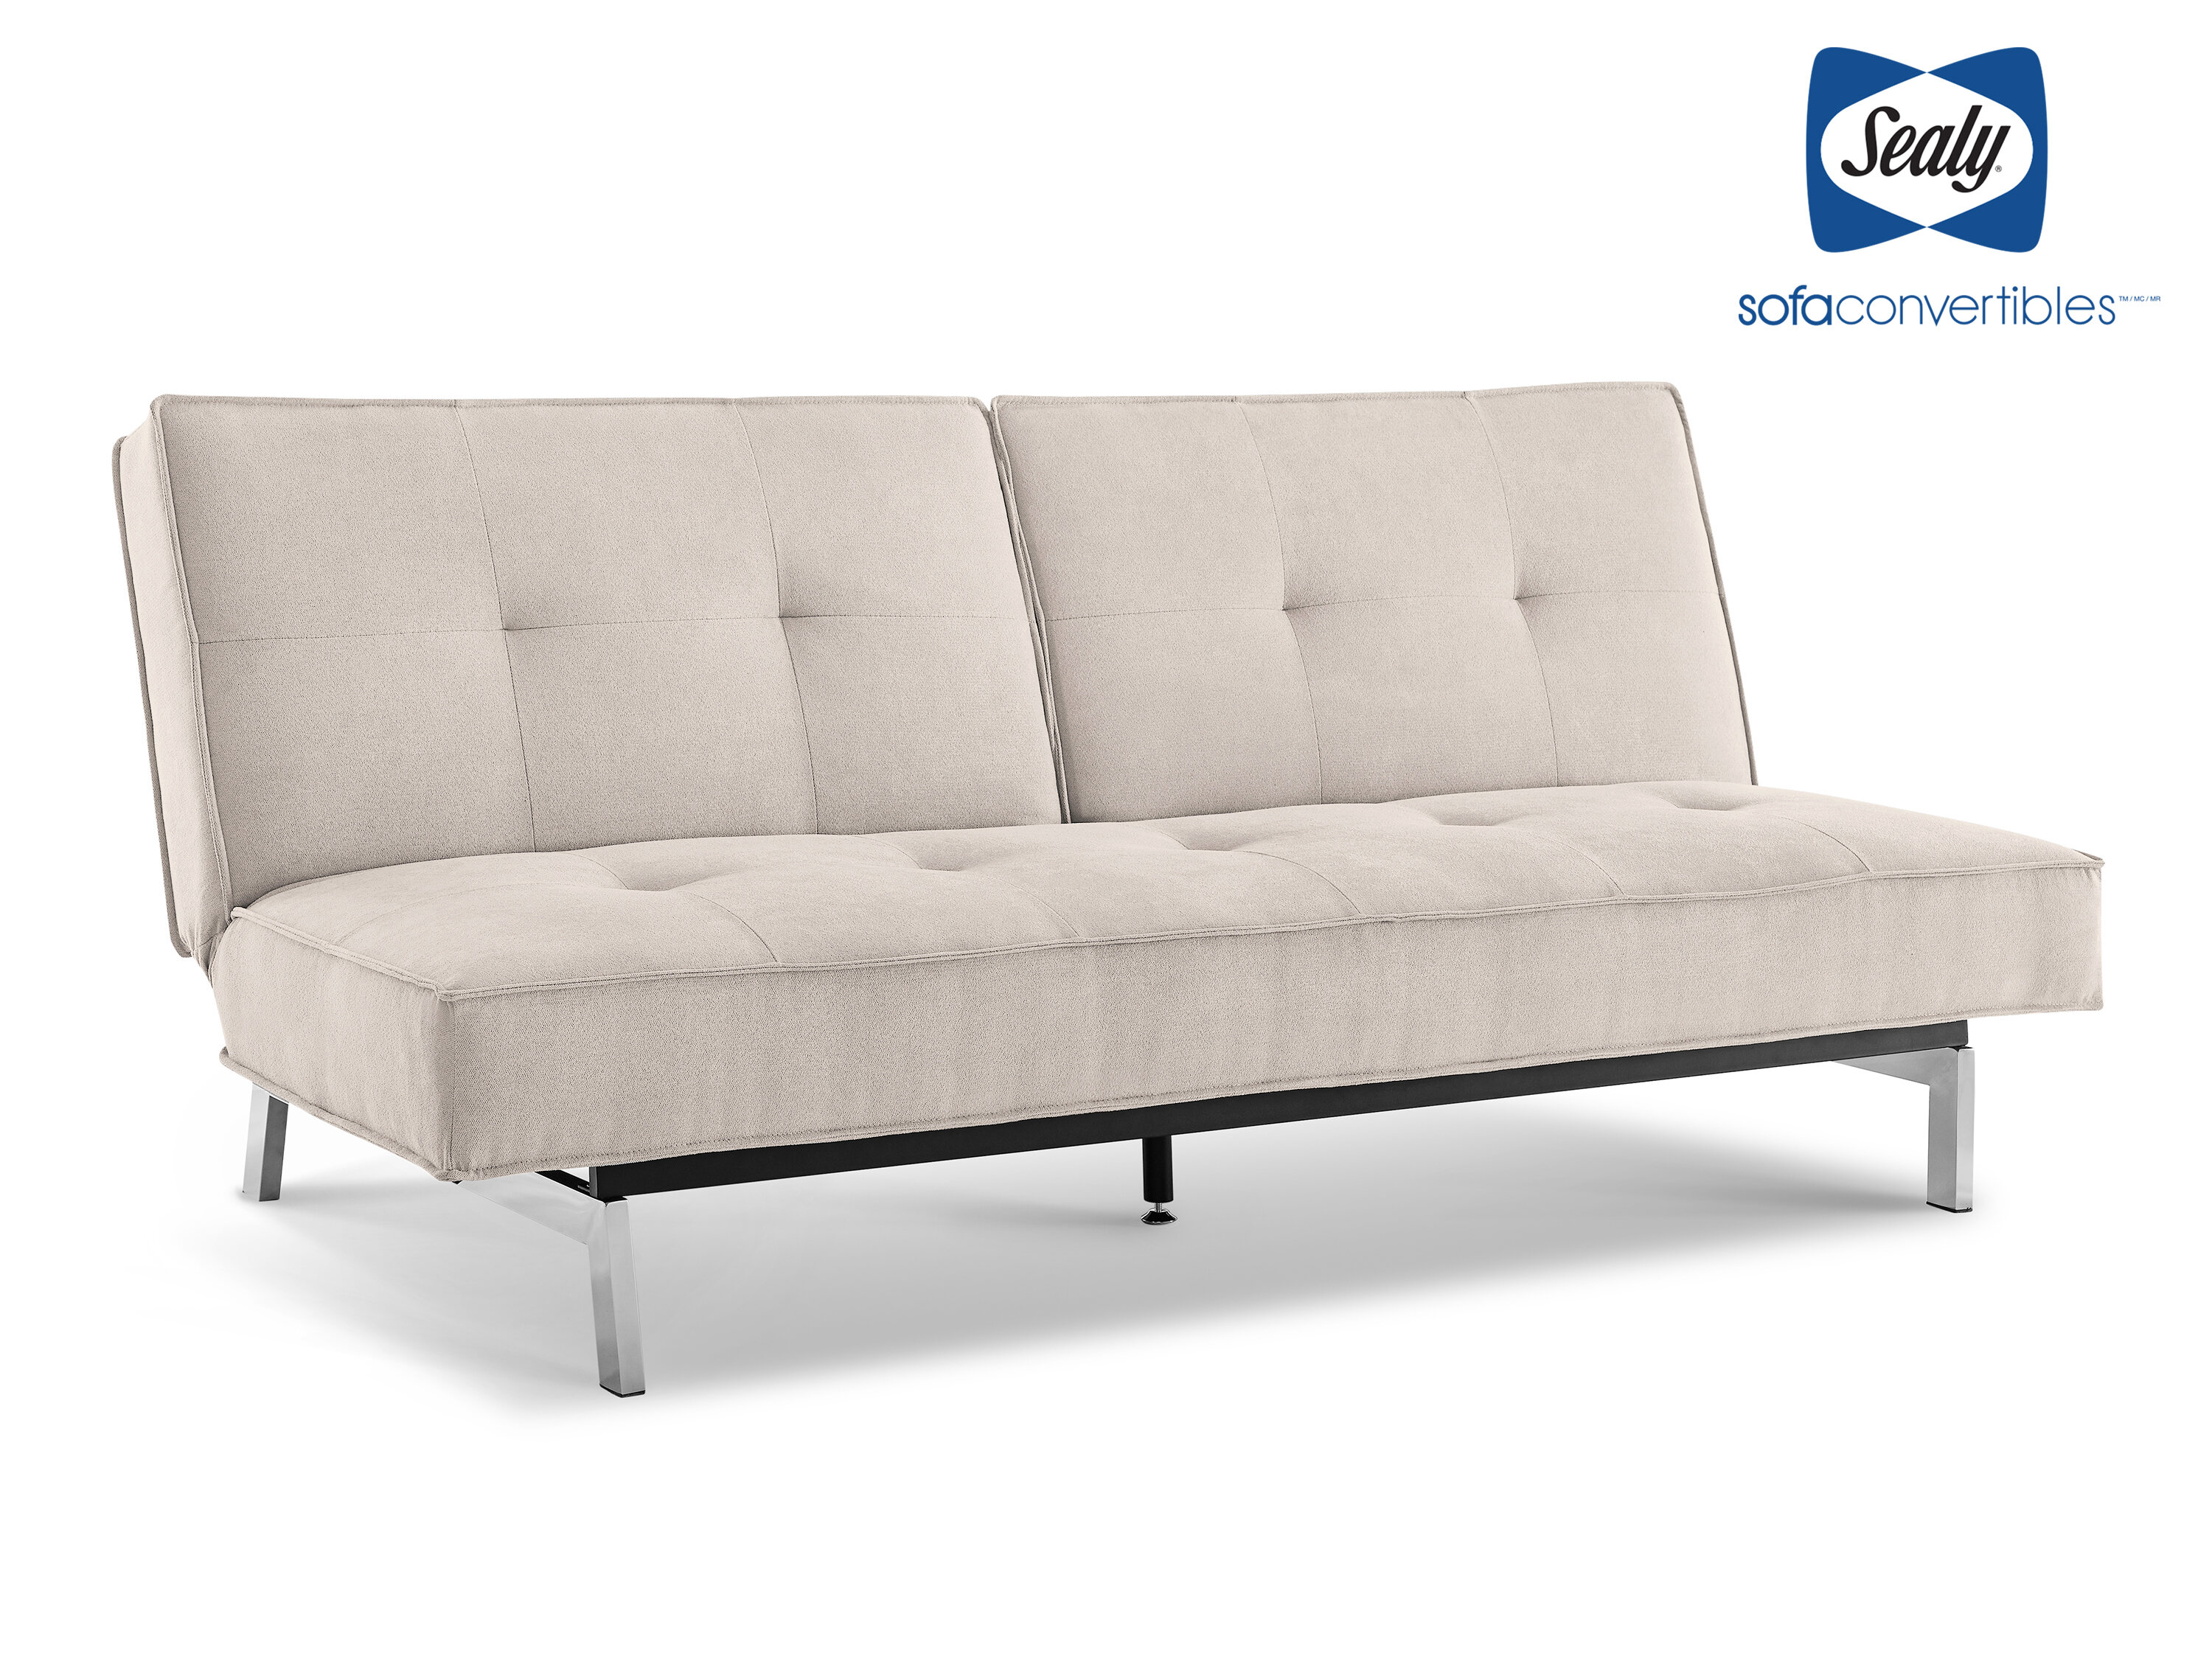 Astonishing Anson Sofa Sleeper Gmtry Best Dining Table And Chair Ideas Images Gmtryco